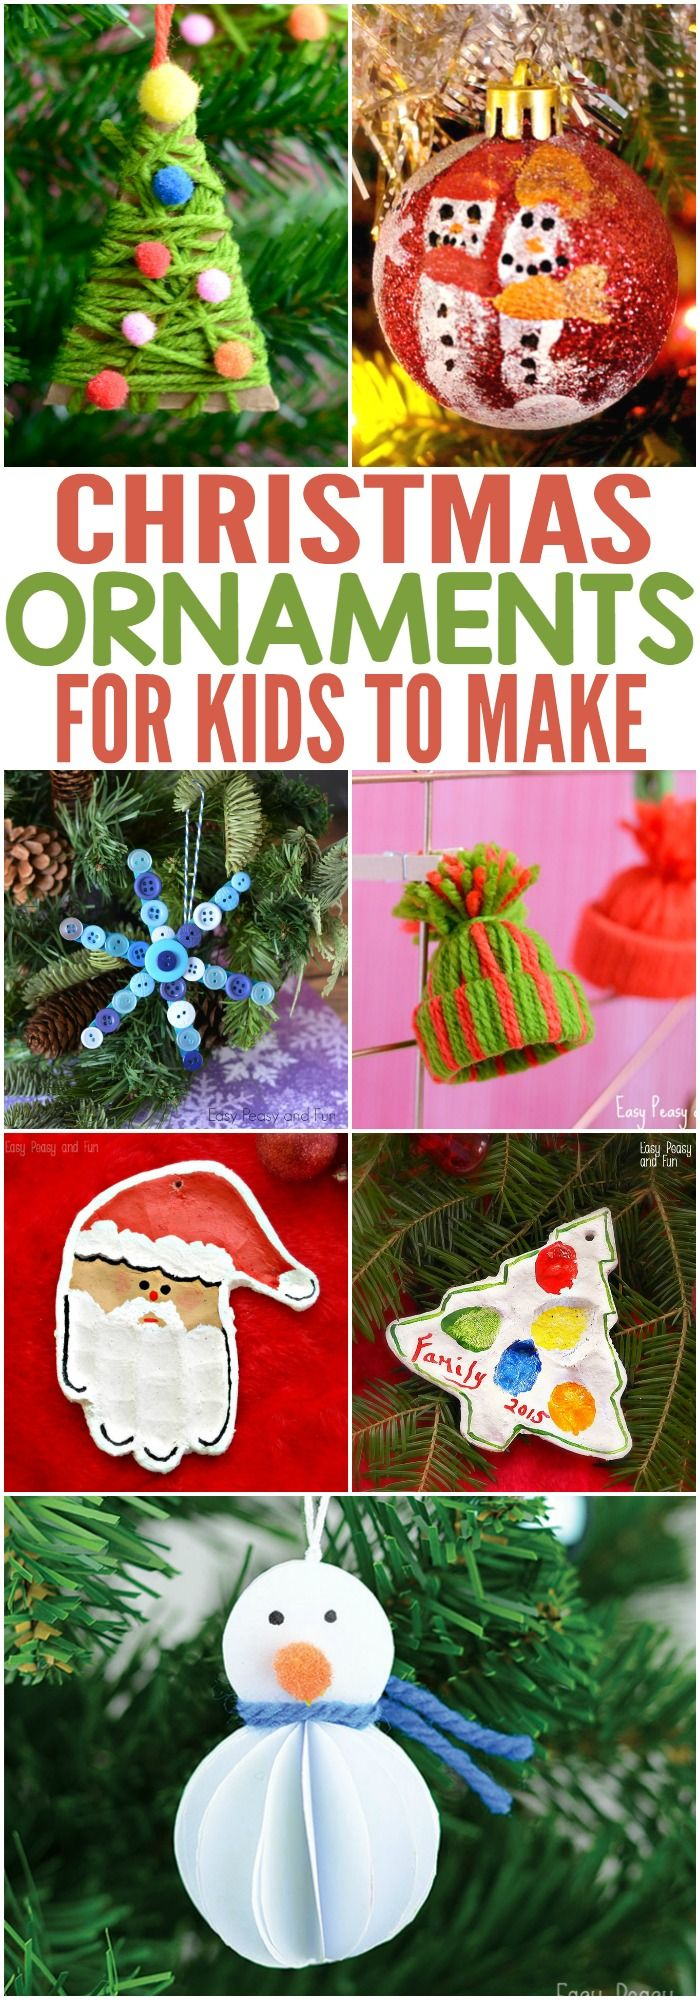 Christmas Ornaments for Kids to Make